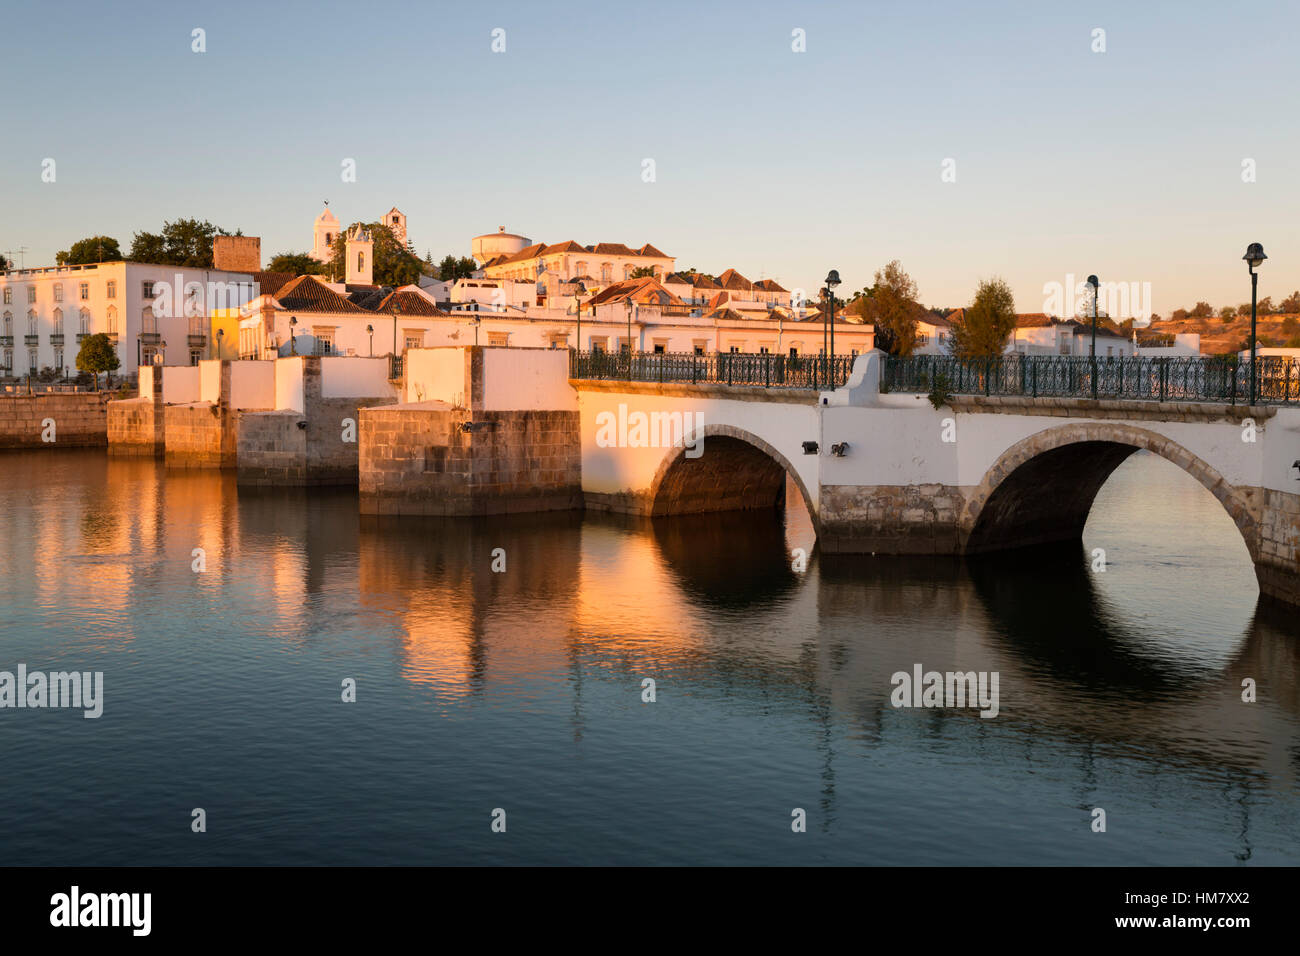 Seven arched Roman bridge and town on the Rio Gilao river at sunrise, Tavira, Algarve, Portugal, Europe - Stock Image